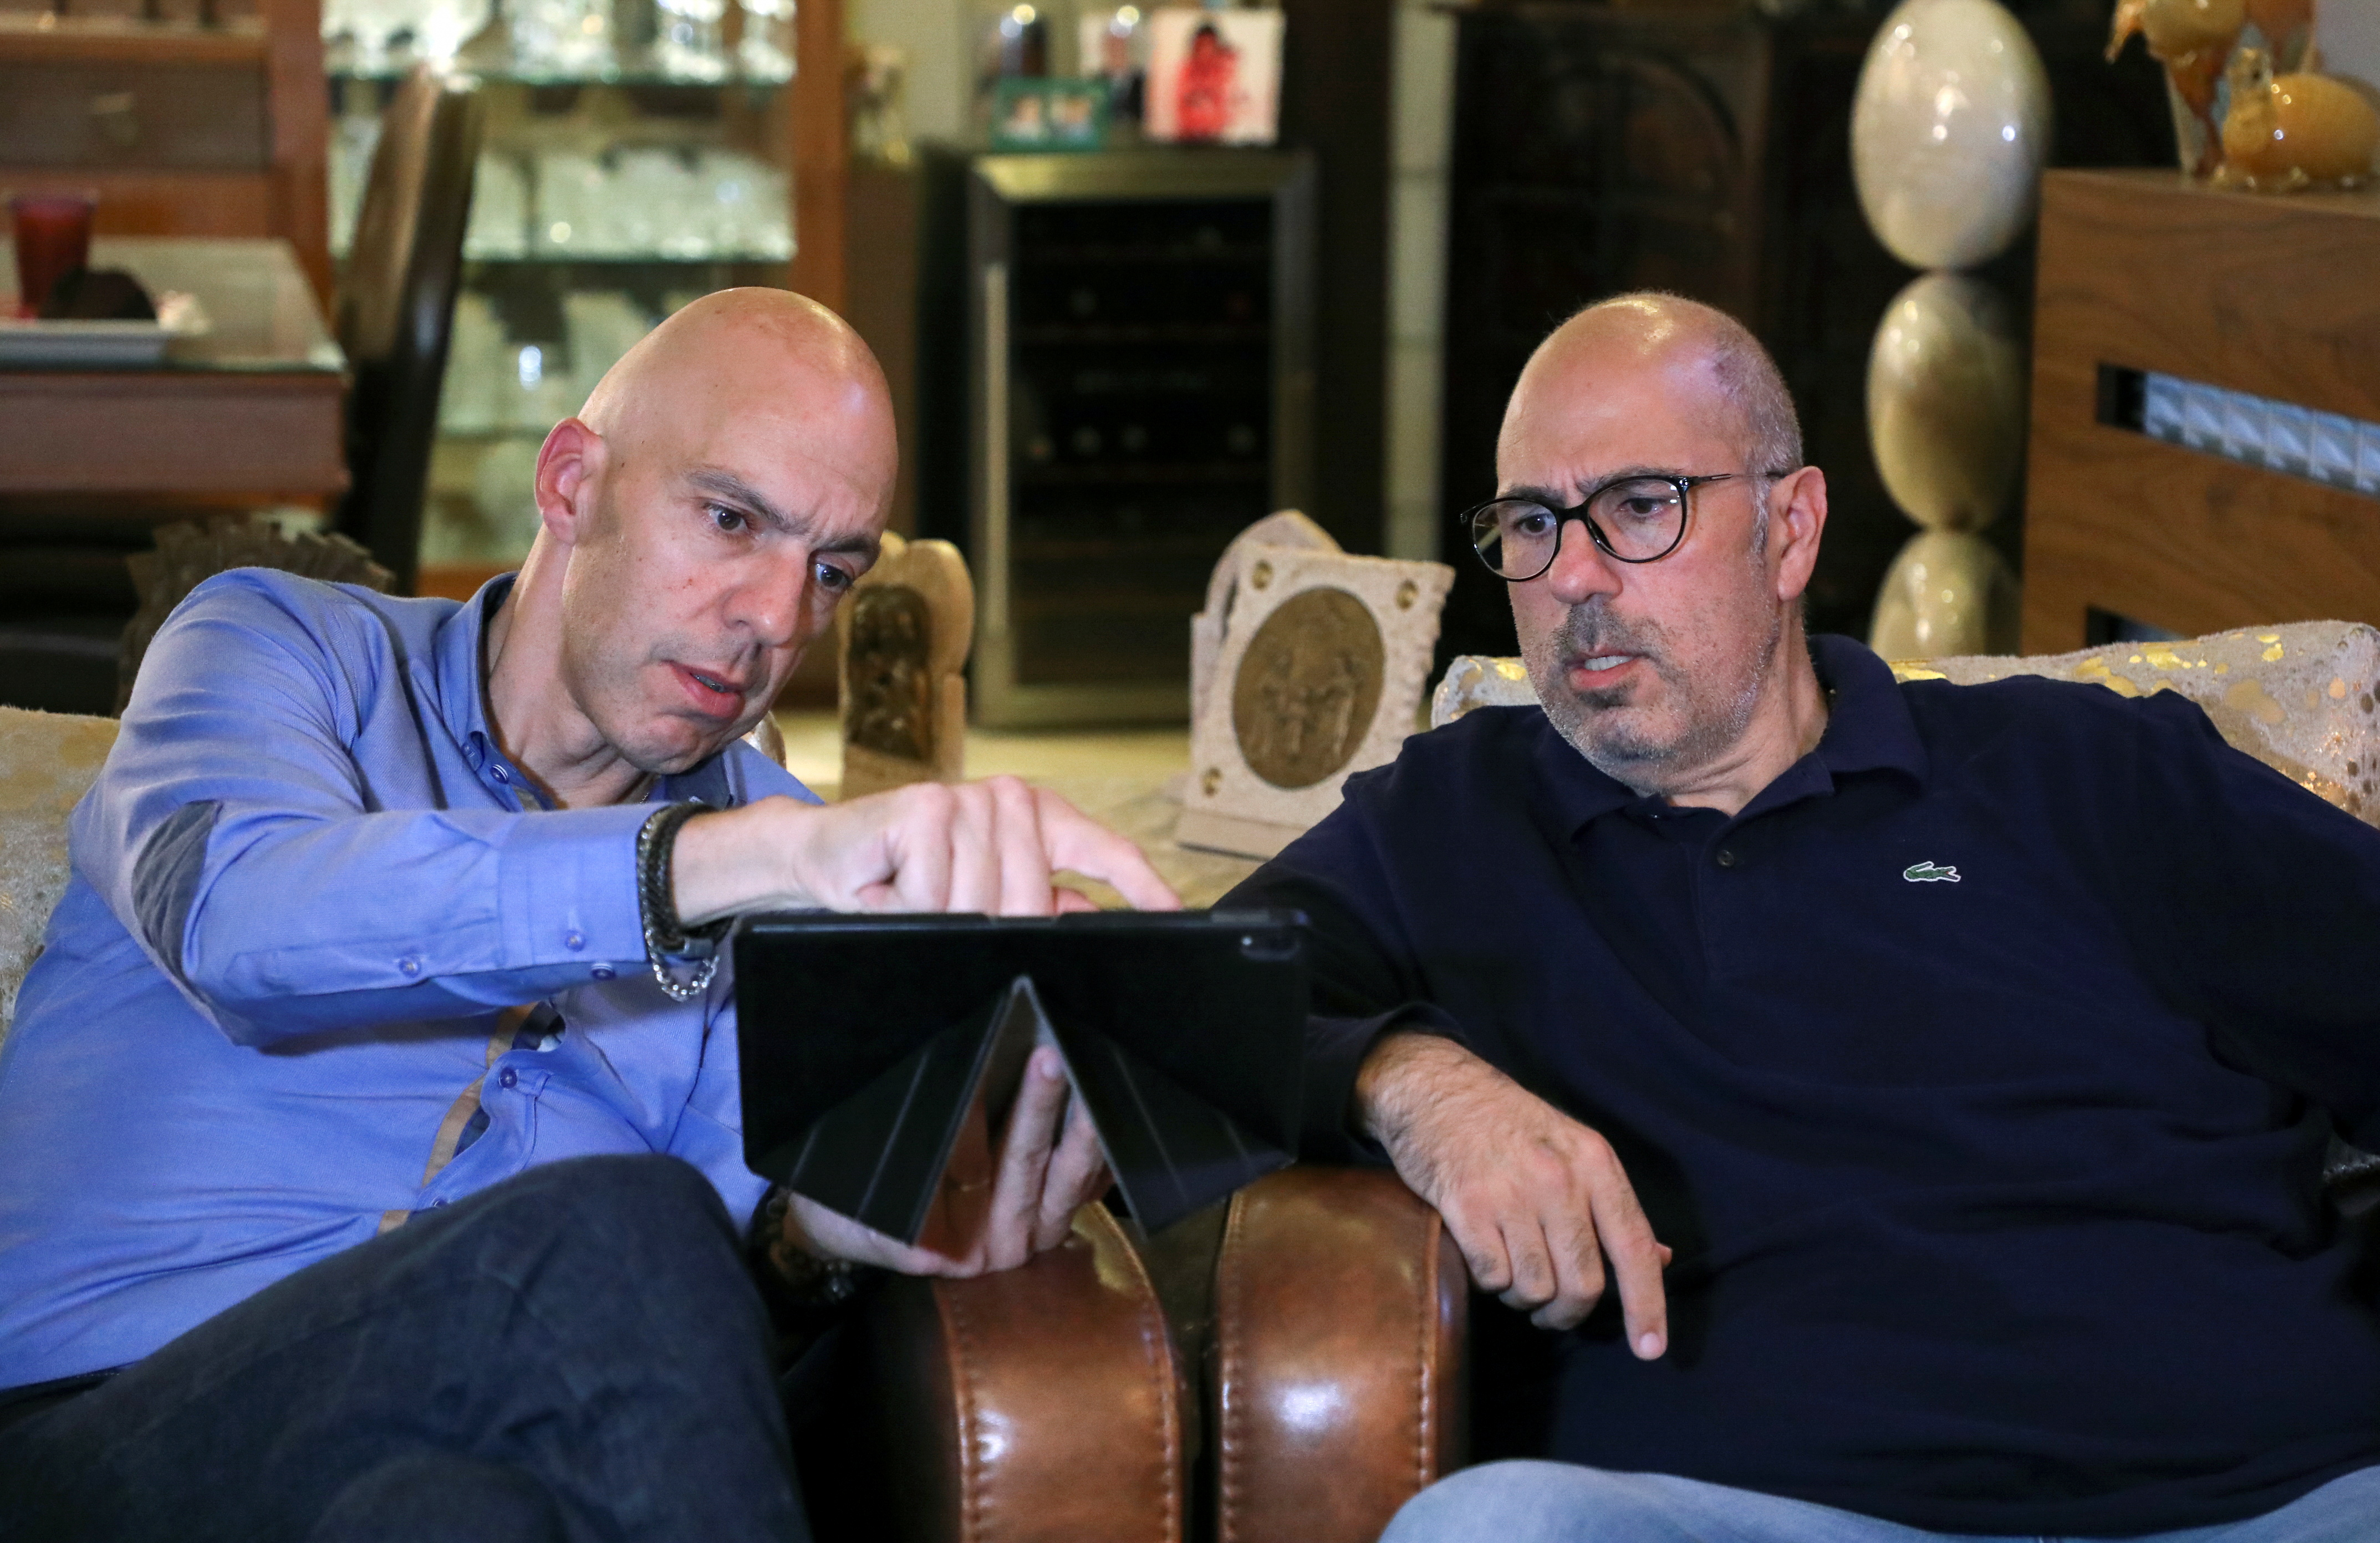 Ralph Khoury, 44, sits with his brother Rony, 49, as they look at a tablet at his home in Qornet El Hamra, Lebanon, September 24, 2021. REUTERS/Mohamed Azakir